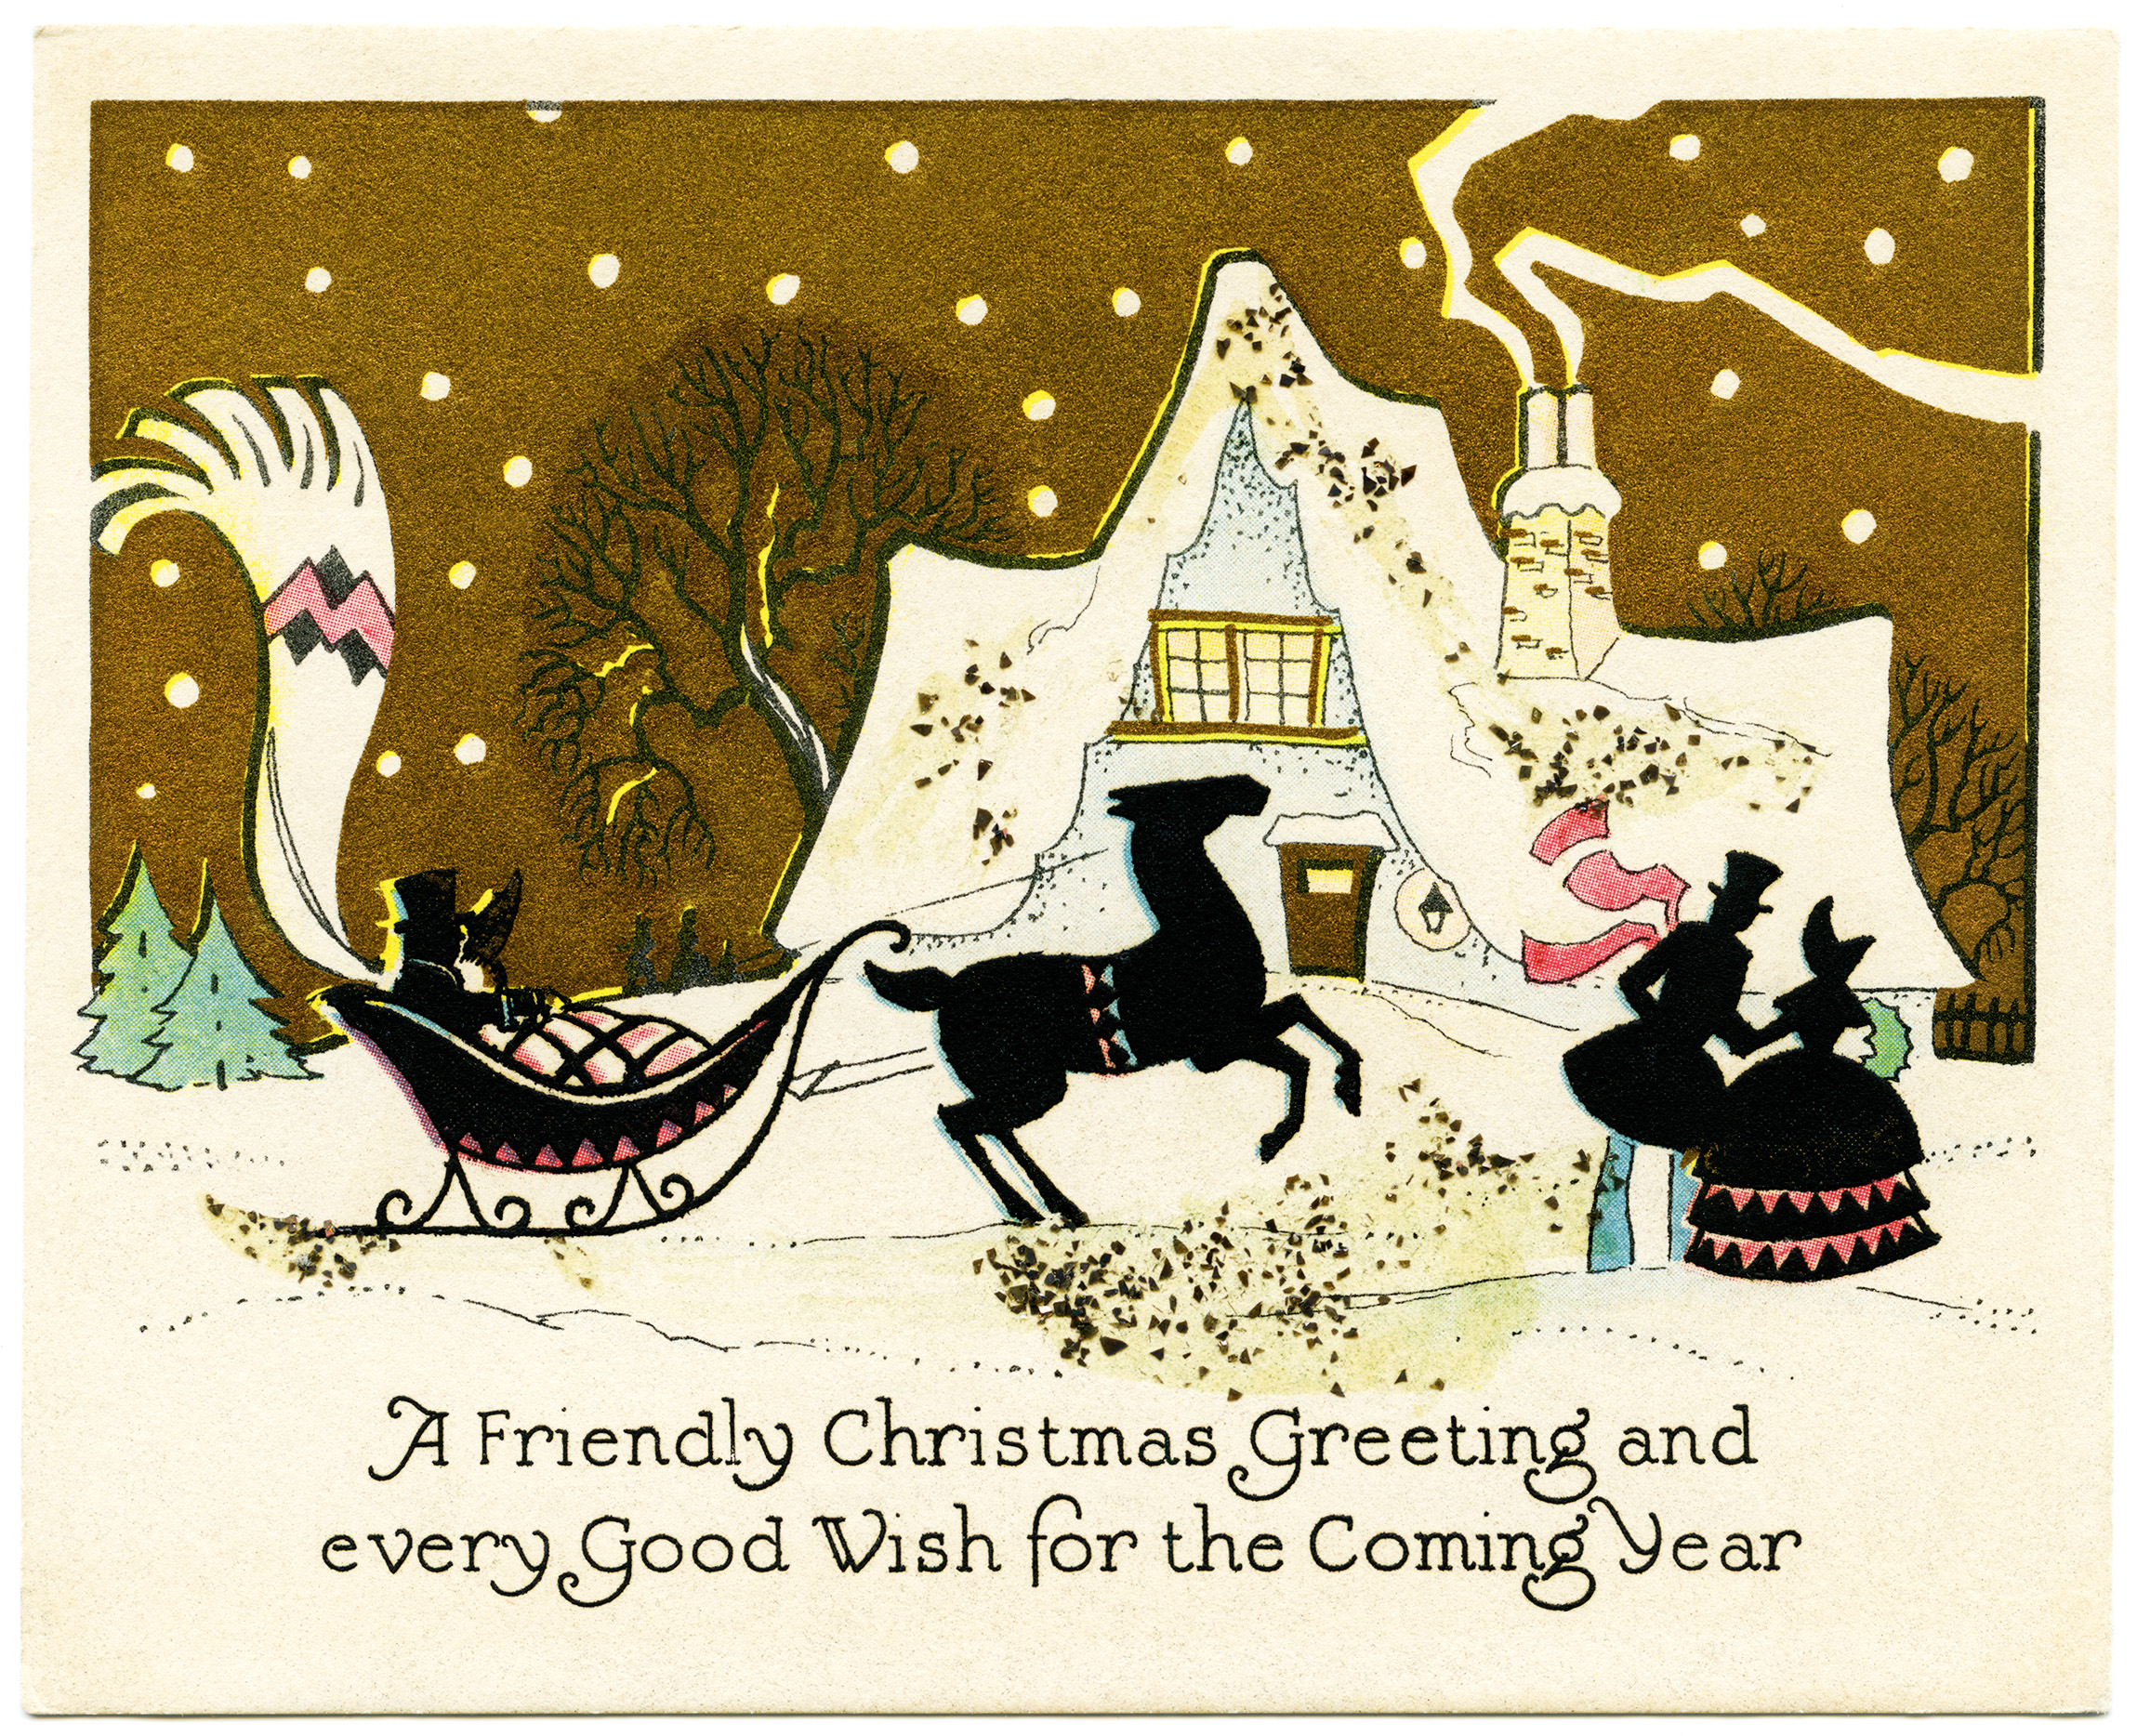 """An old fashioned Christmas card with a snowy scene, house and people around a sleigh with the words """"A Friendly Christmas Greeting and Every Good Wish for the Coming Year."""""""